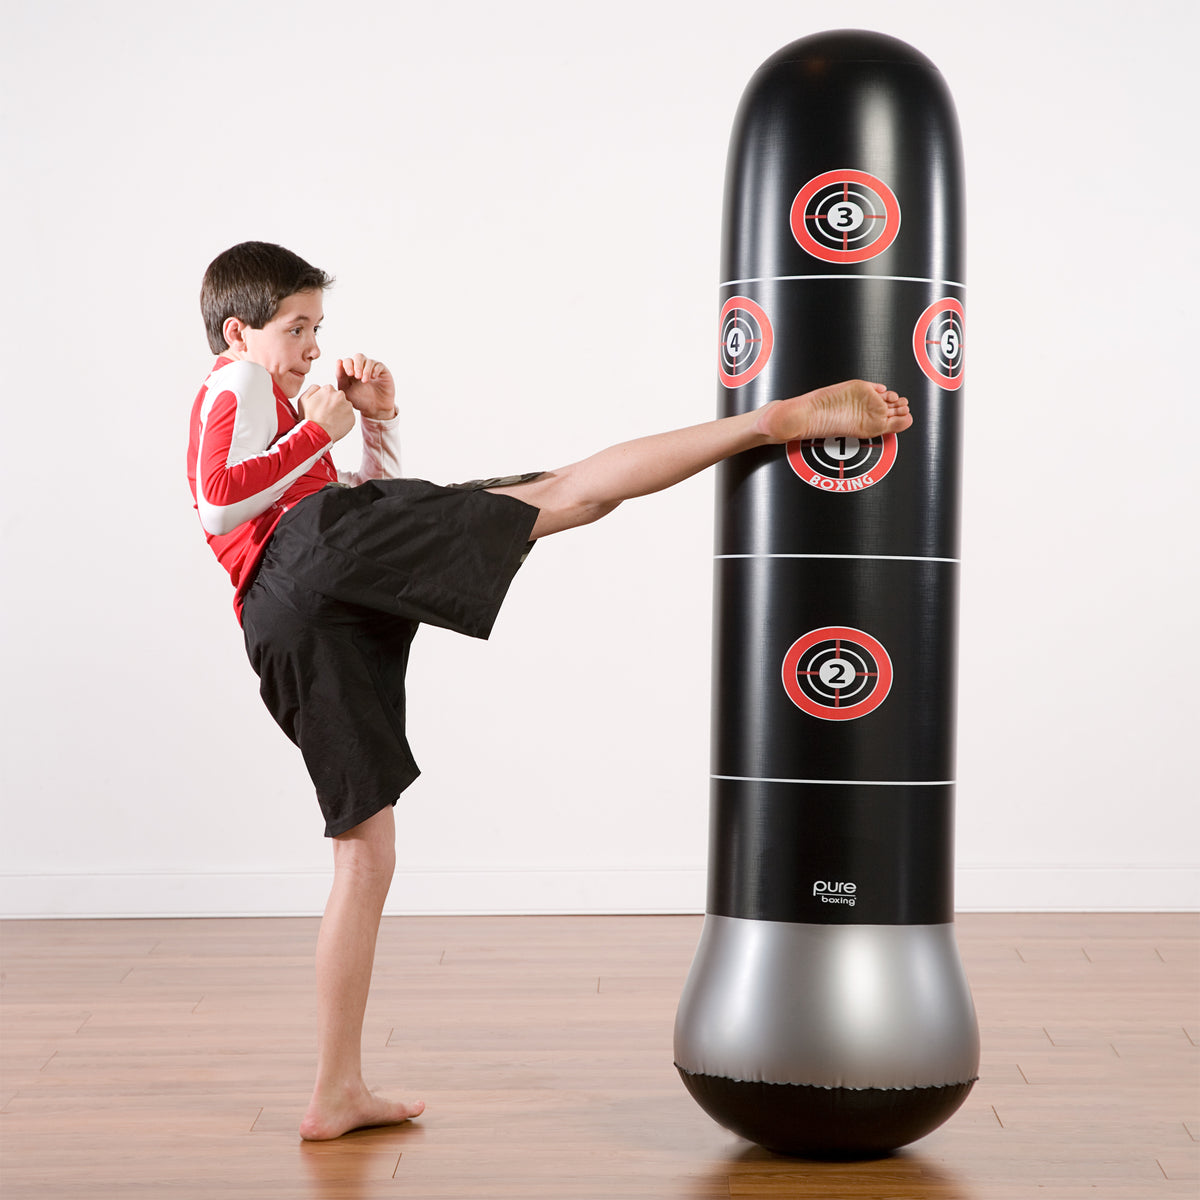 Pure Boxing Mma Target Bag Inflatable Punching Bag 63